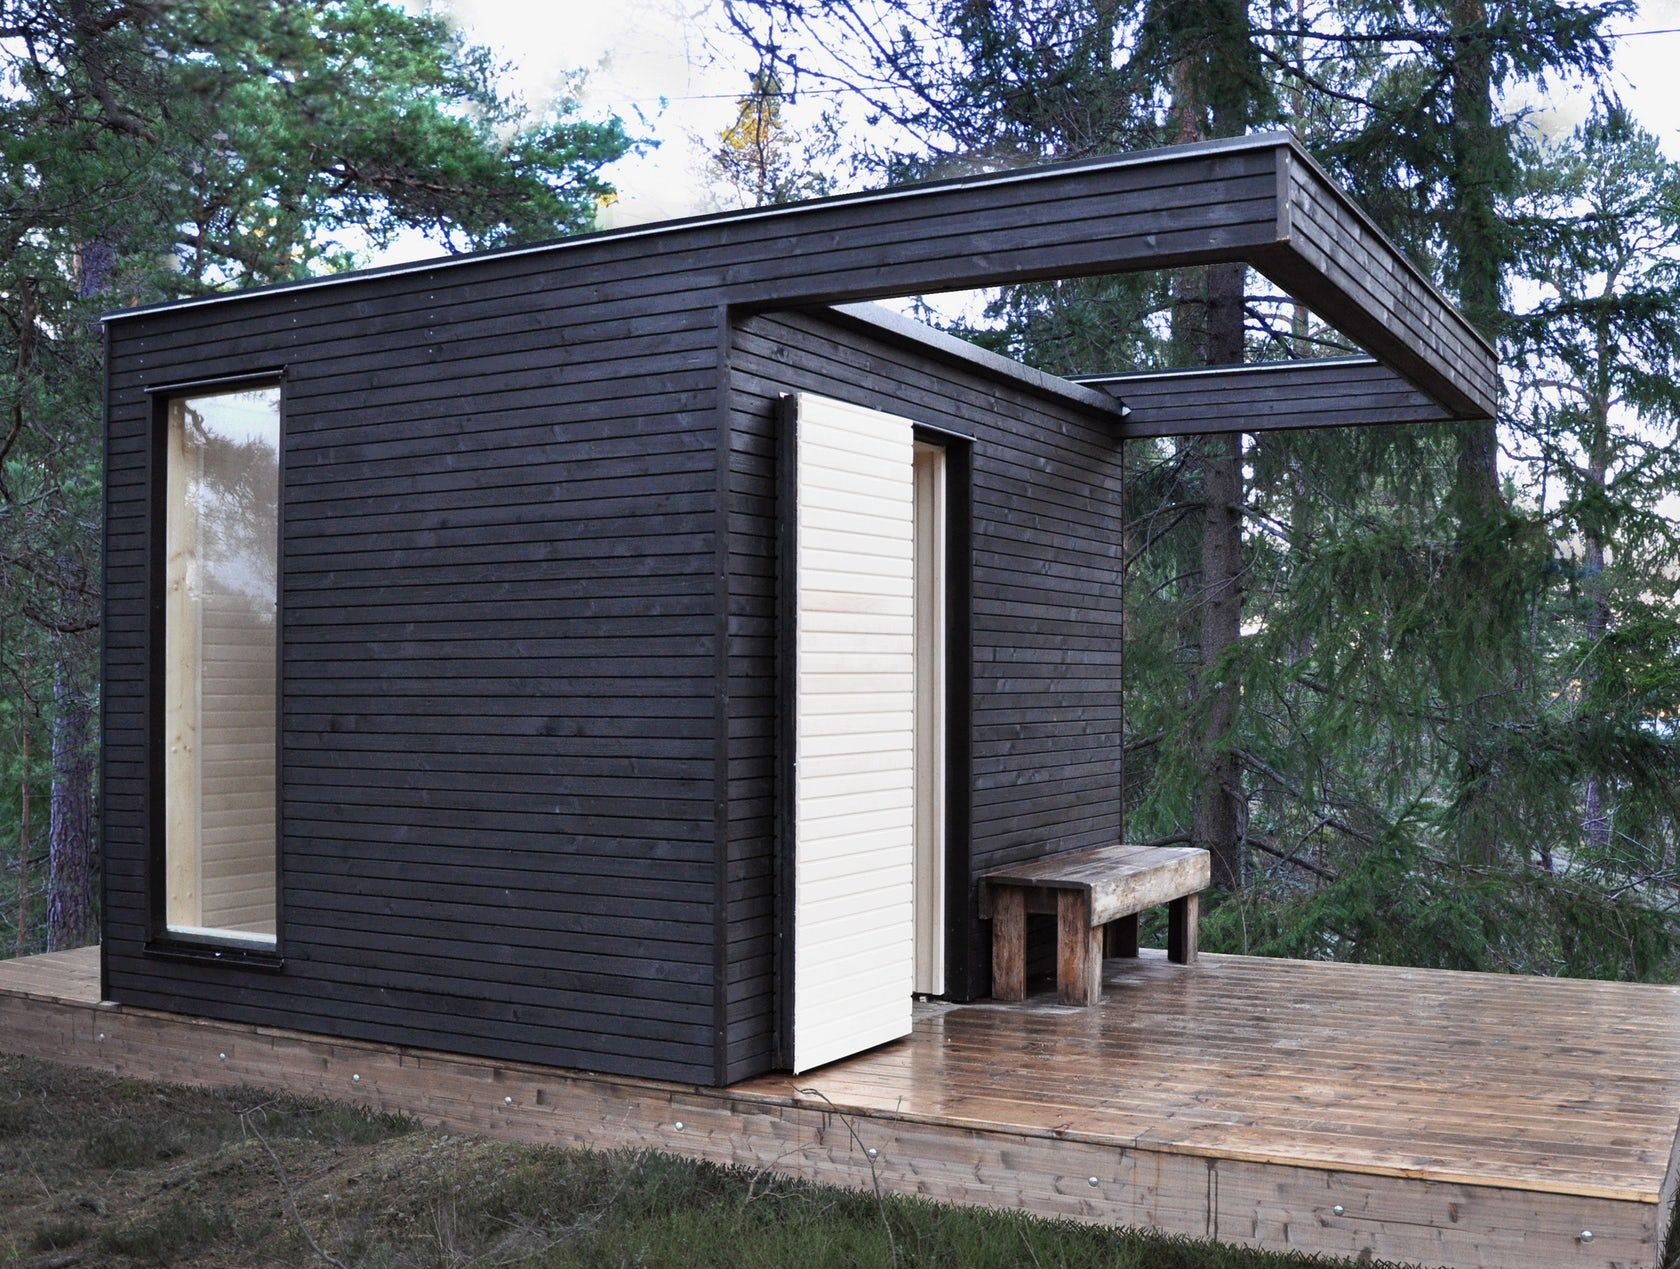 A Little House With Great Potential The One Minihouse Is Built By Scandinavian Carpenters And Delivered In One Piece Re Sauna House Outdoor Sauna Sauna Design